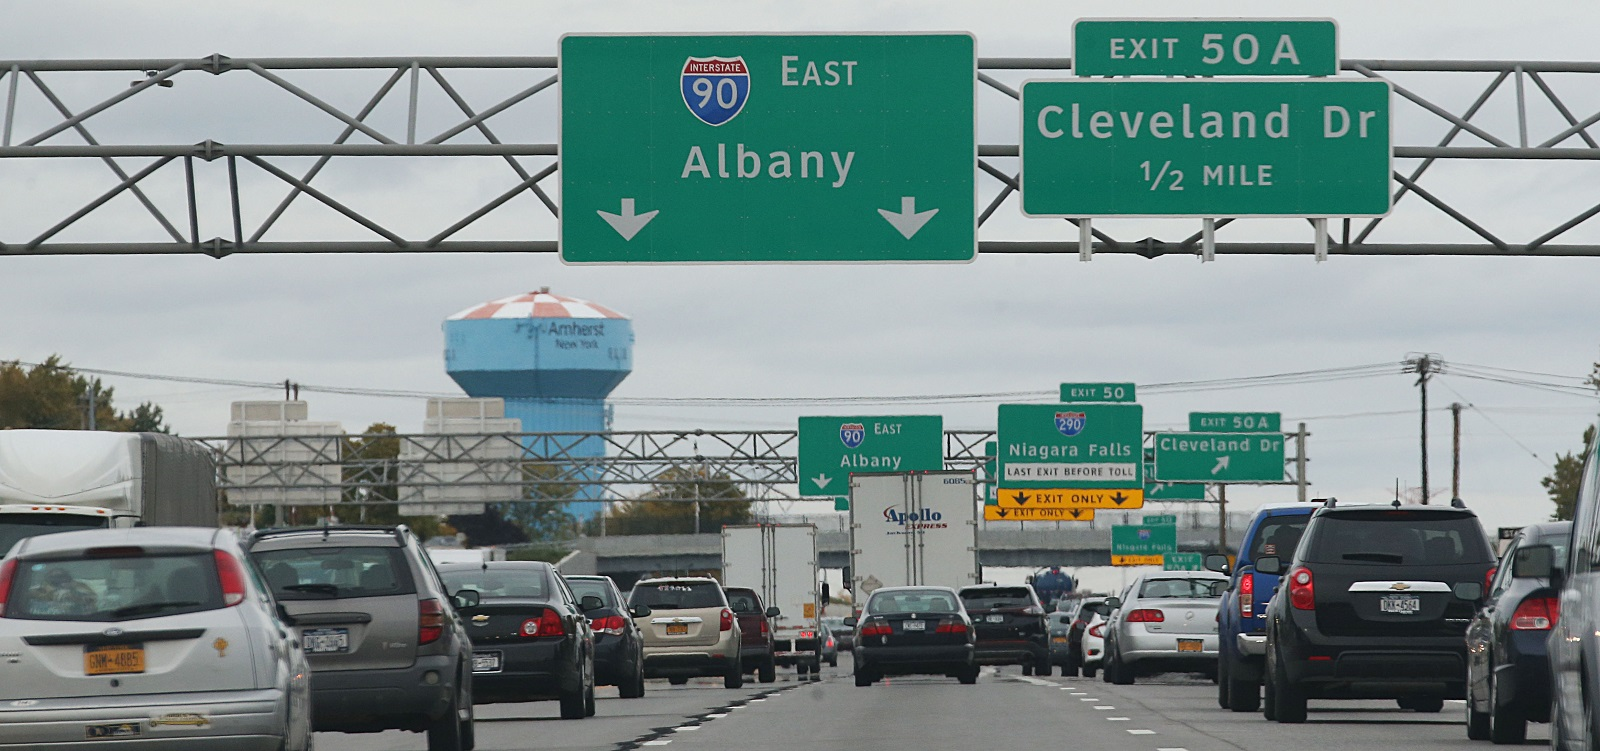 The Town of Amherst blue water tower is ever visible during rush hour traffic at the interchange highways I-90, I-290 and NY33, Wednesday, Oct. 26, 2016.  Traffic moves eastbound on the I-90. (Sharon Cantillon/Buffalo News)